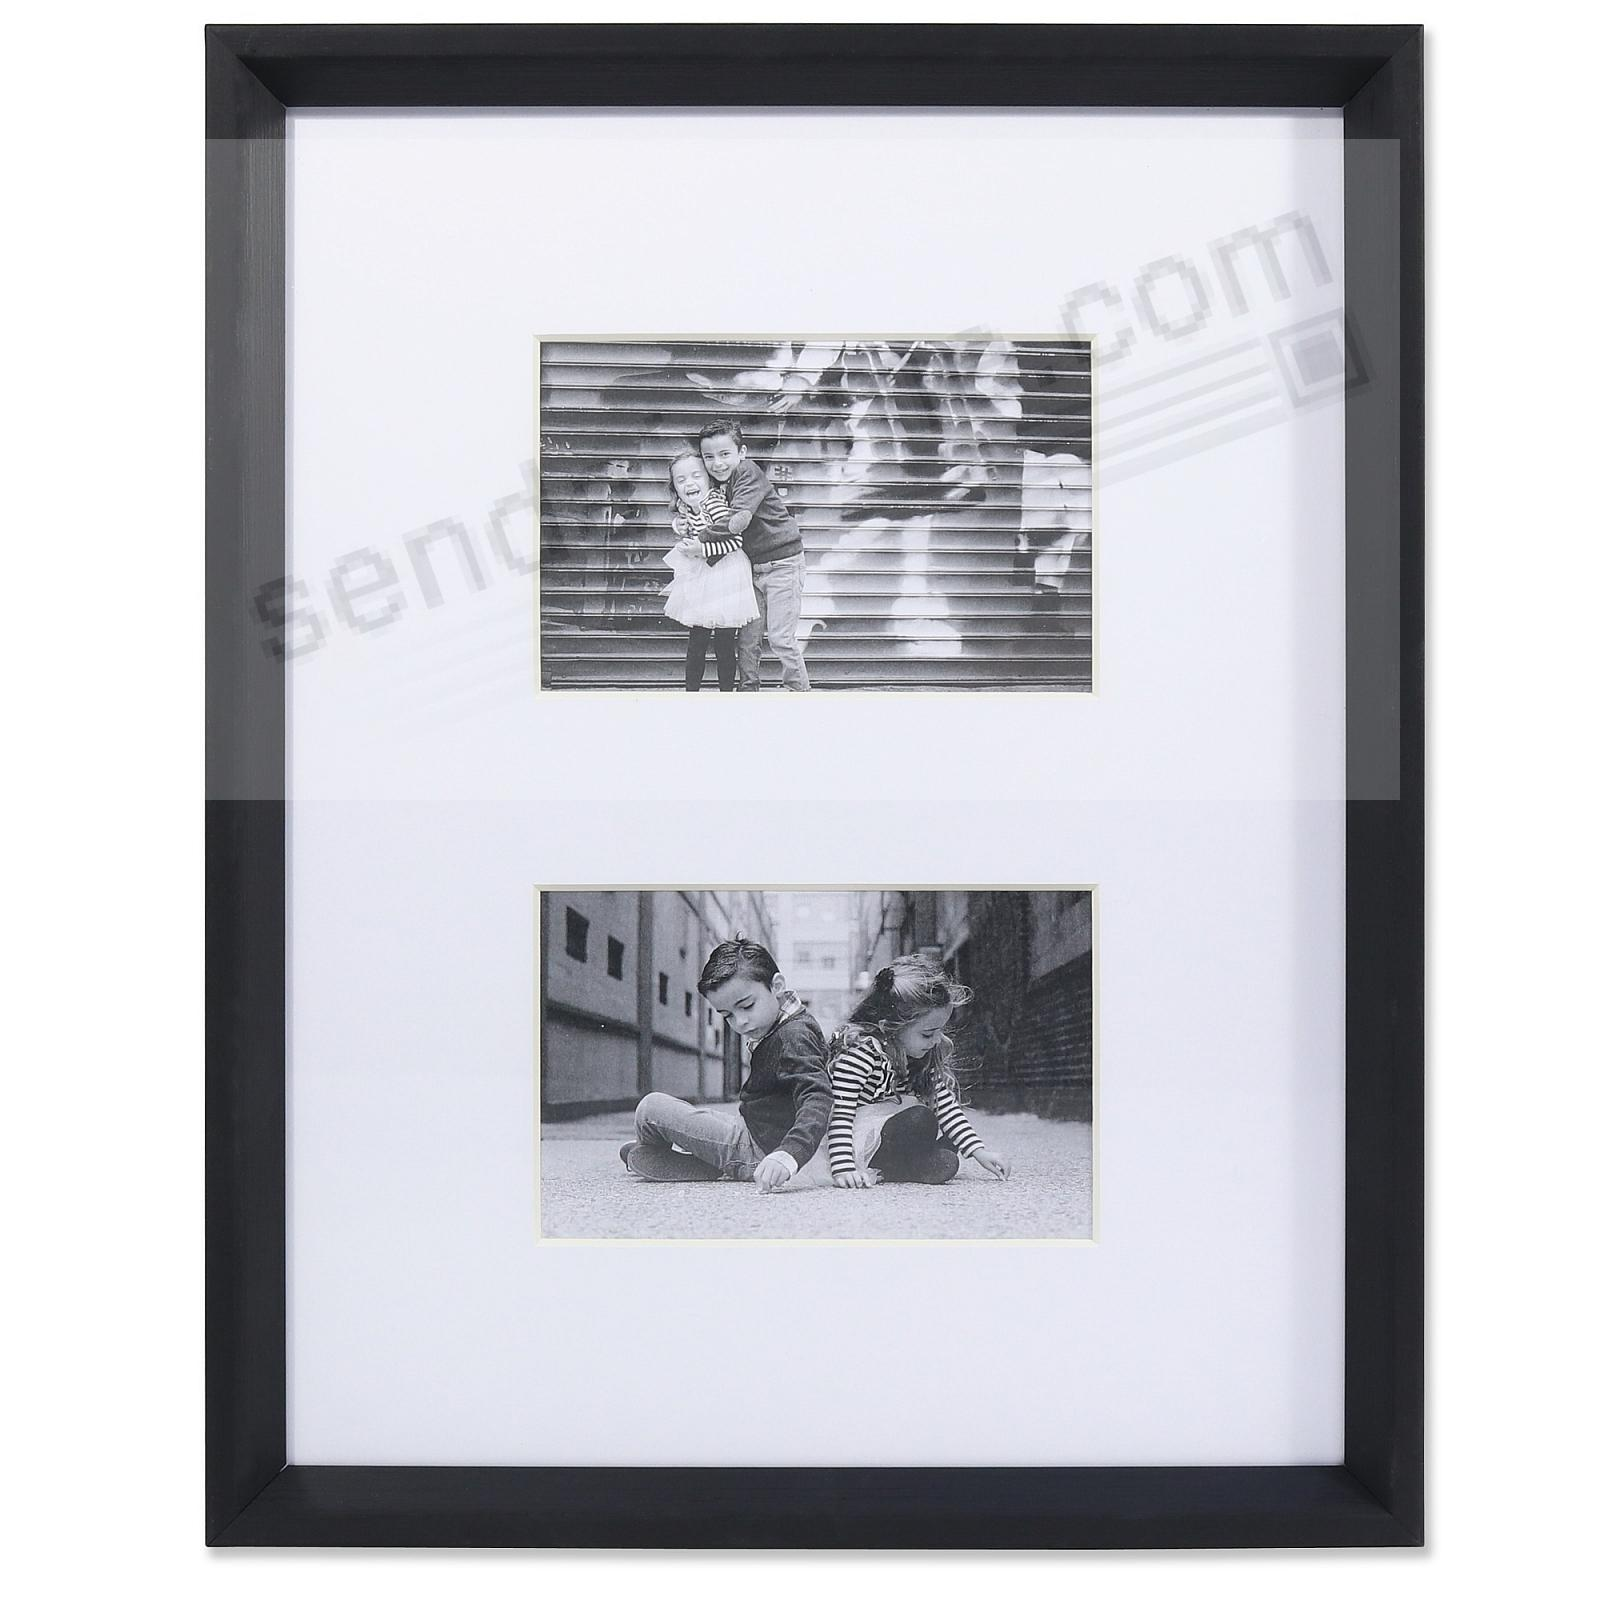 GALLERY BLACK matted collage displays (2) 4x6/11x14 prints by Lawrence®